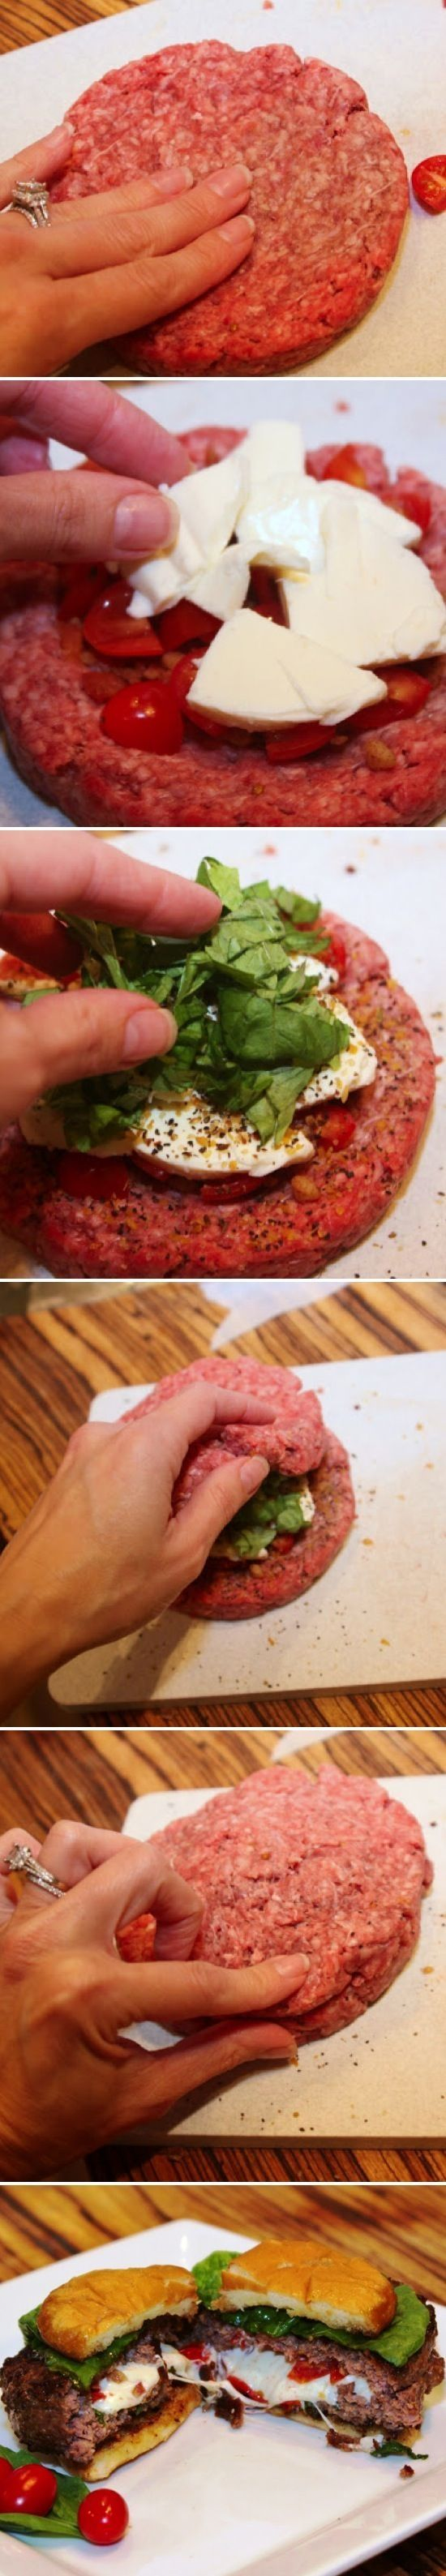 stuffed hamburgers! Making these for Dad this summer